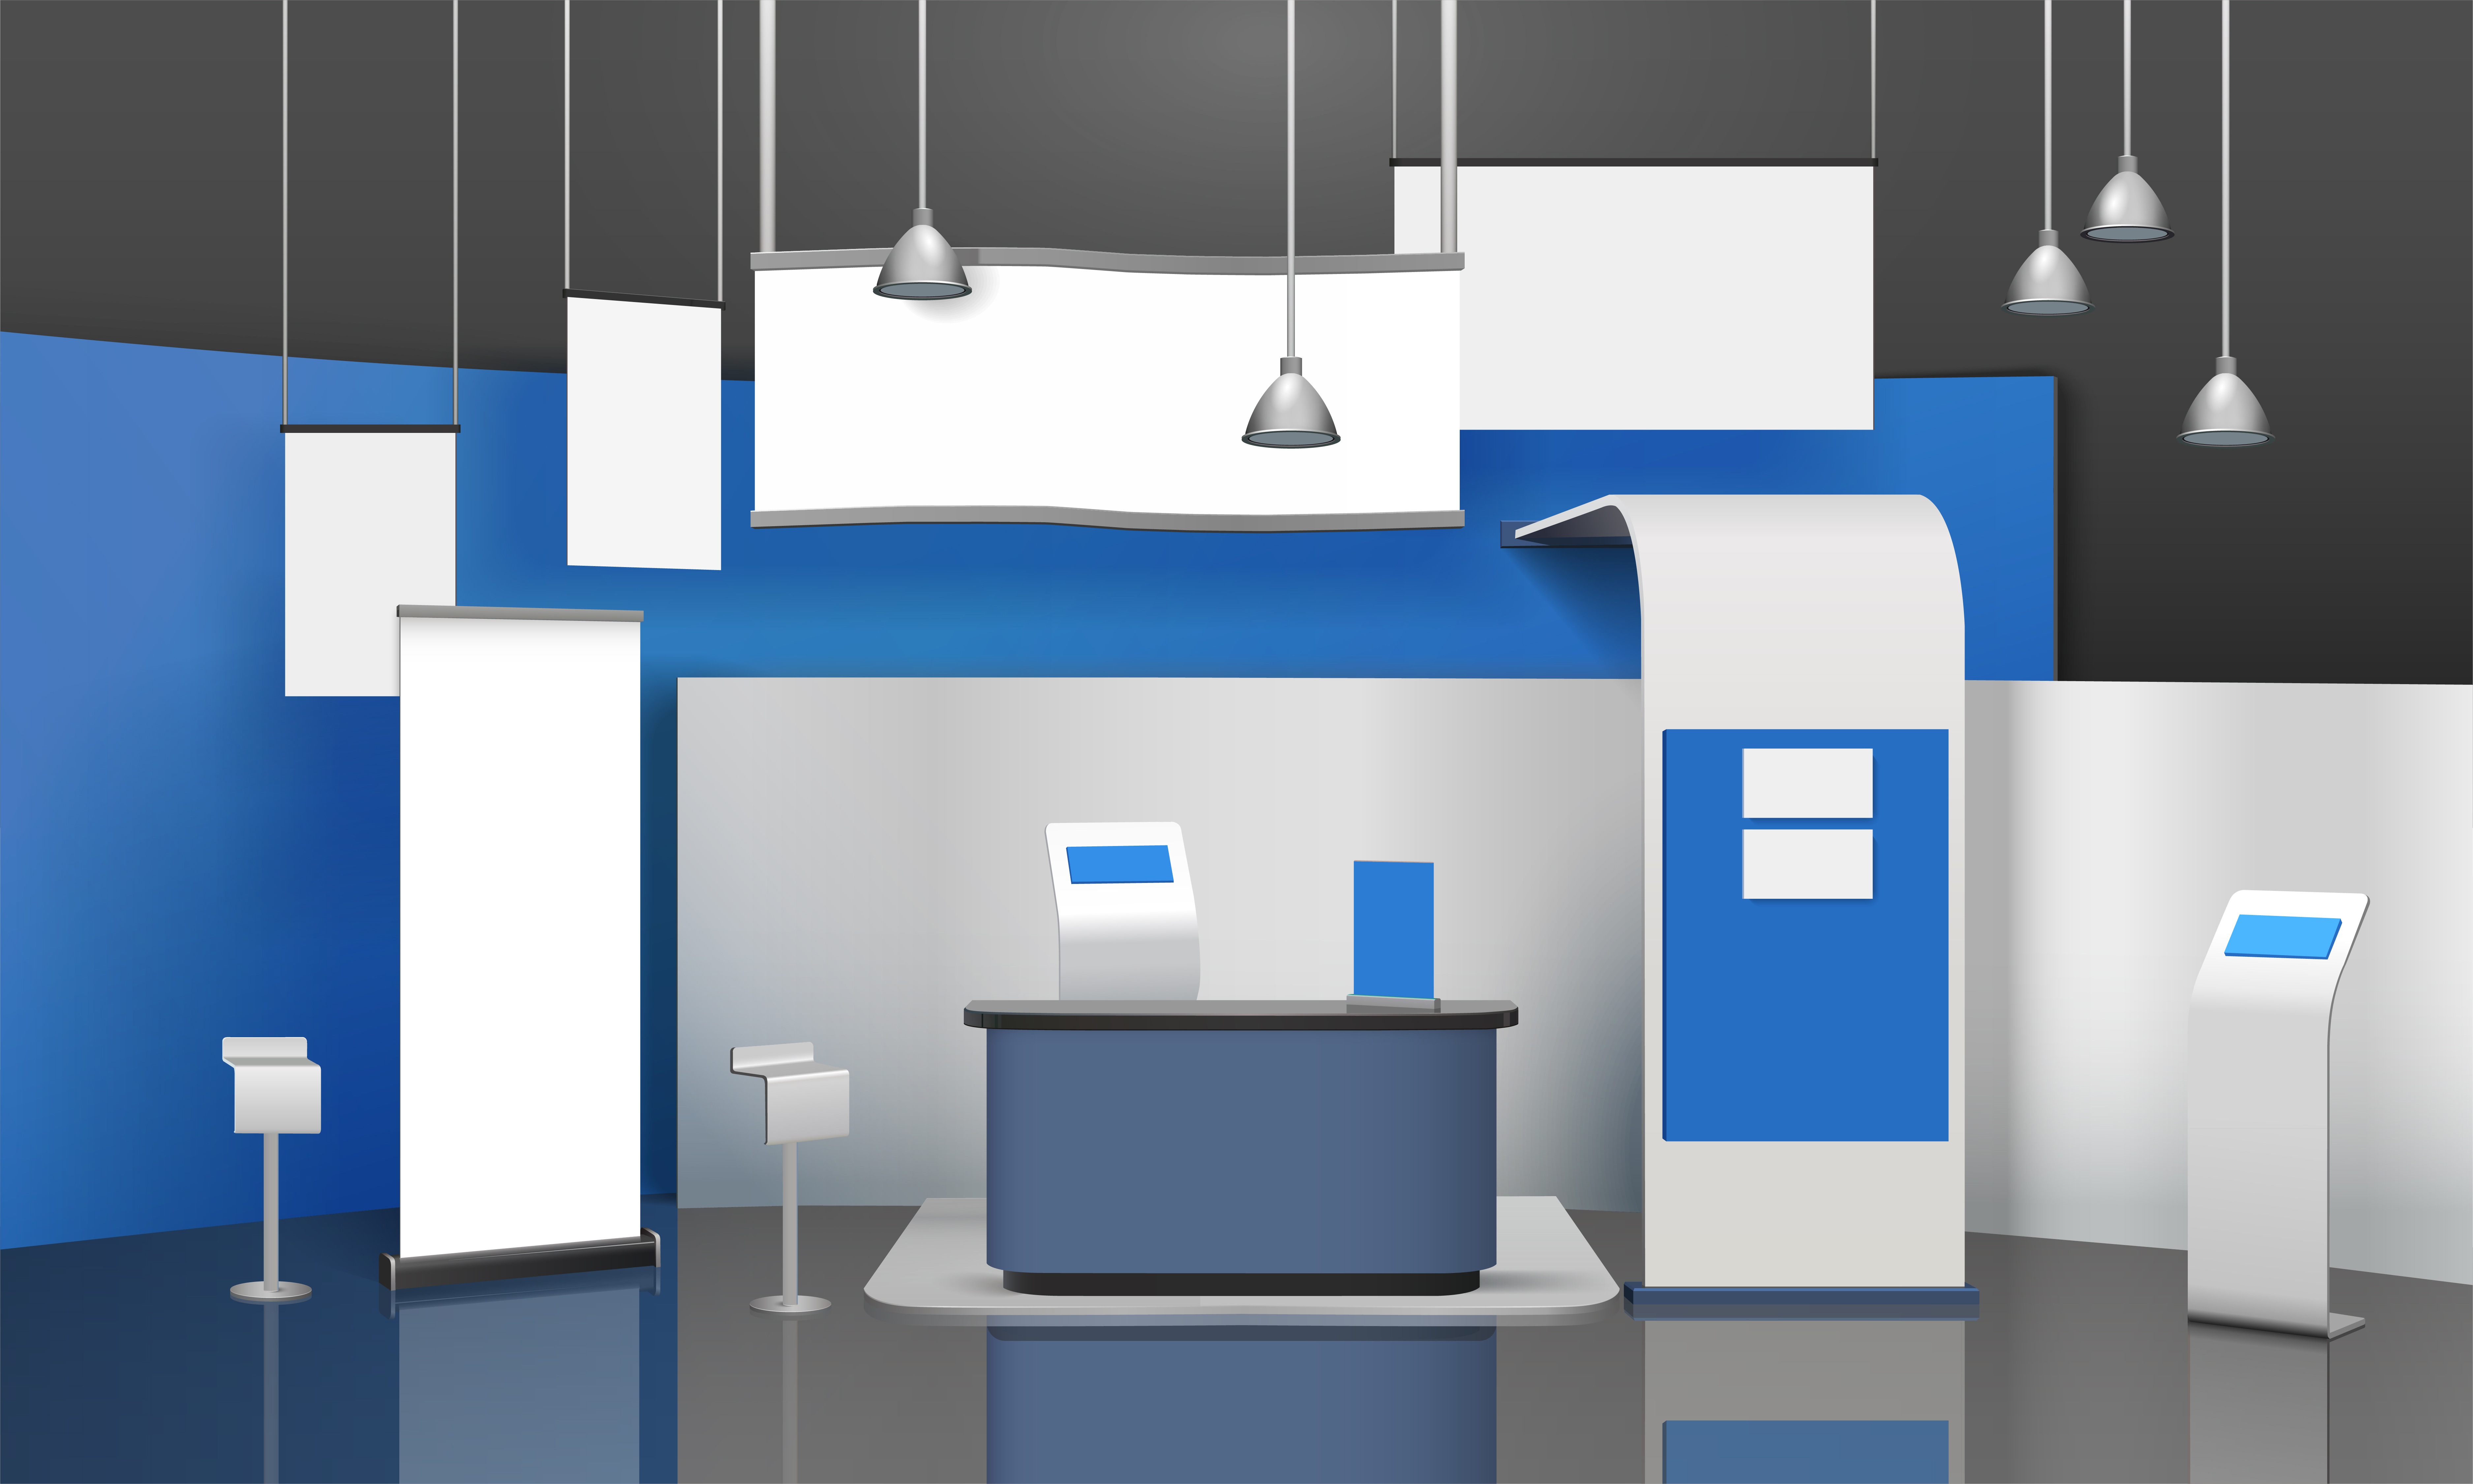 Exhibition Stand Design Mockup Free : Exhibition stand display trade booth mockup design orange and